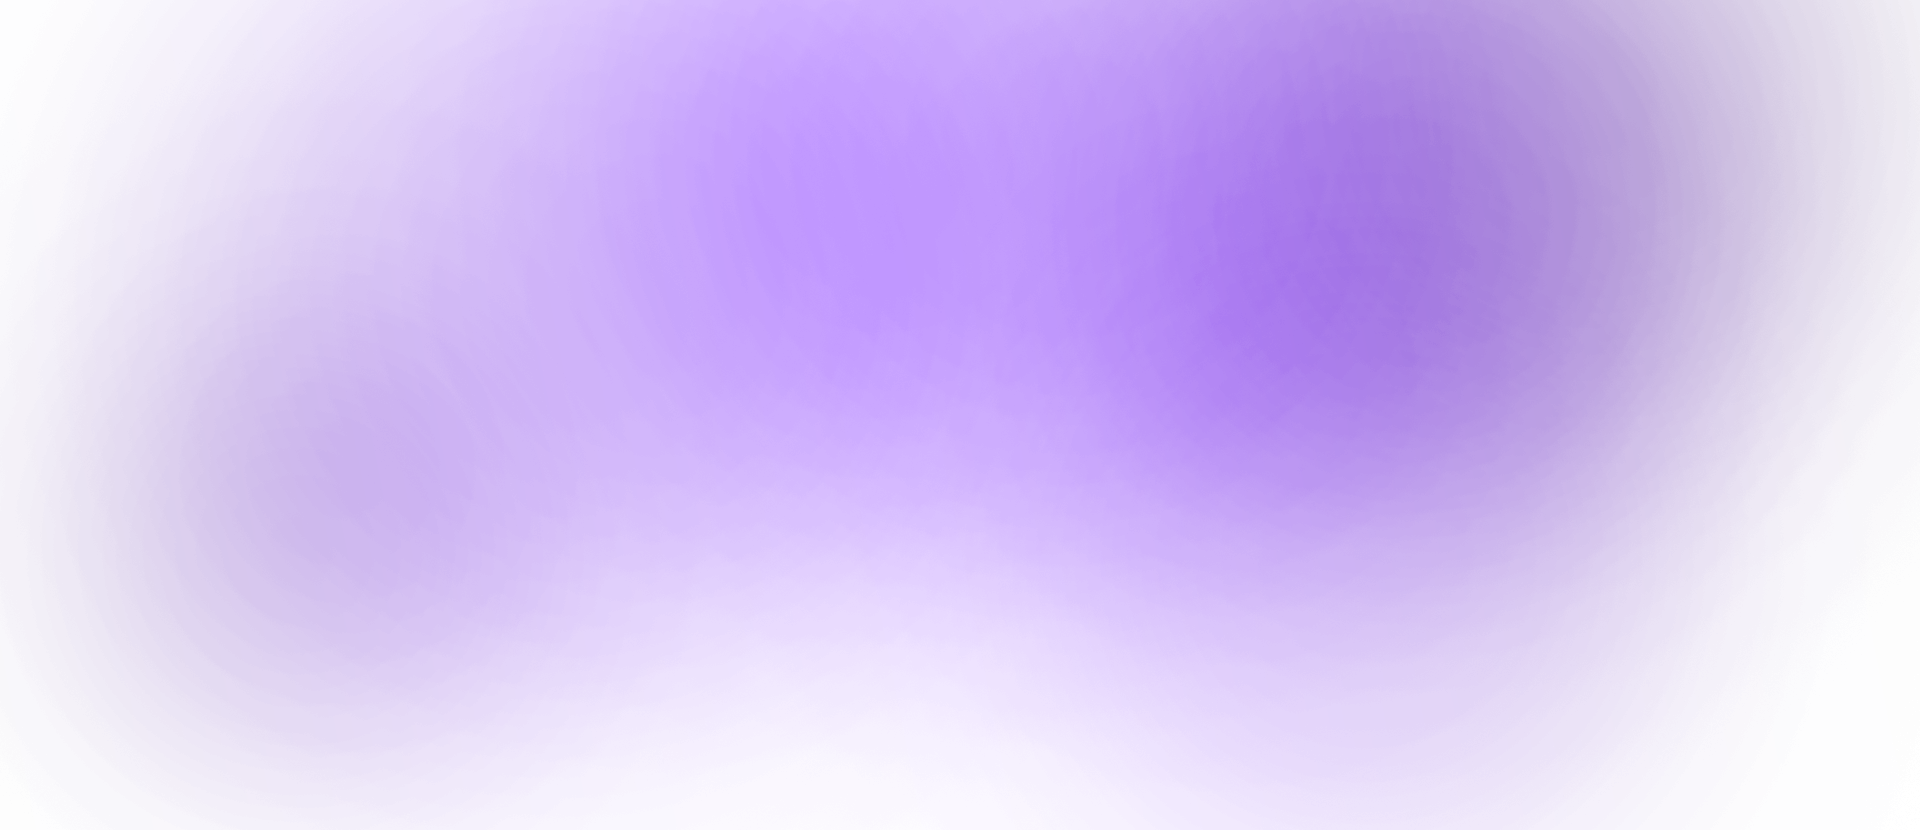 AGON_AG27_FV_FW_PROTECTION_BACKGROUND.png